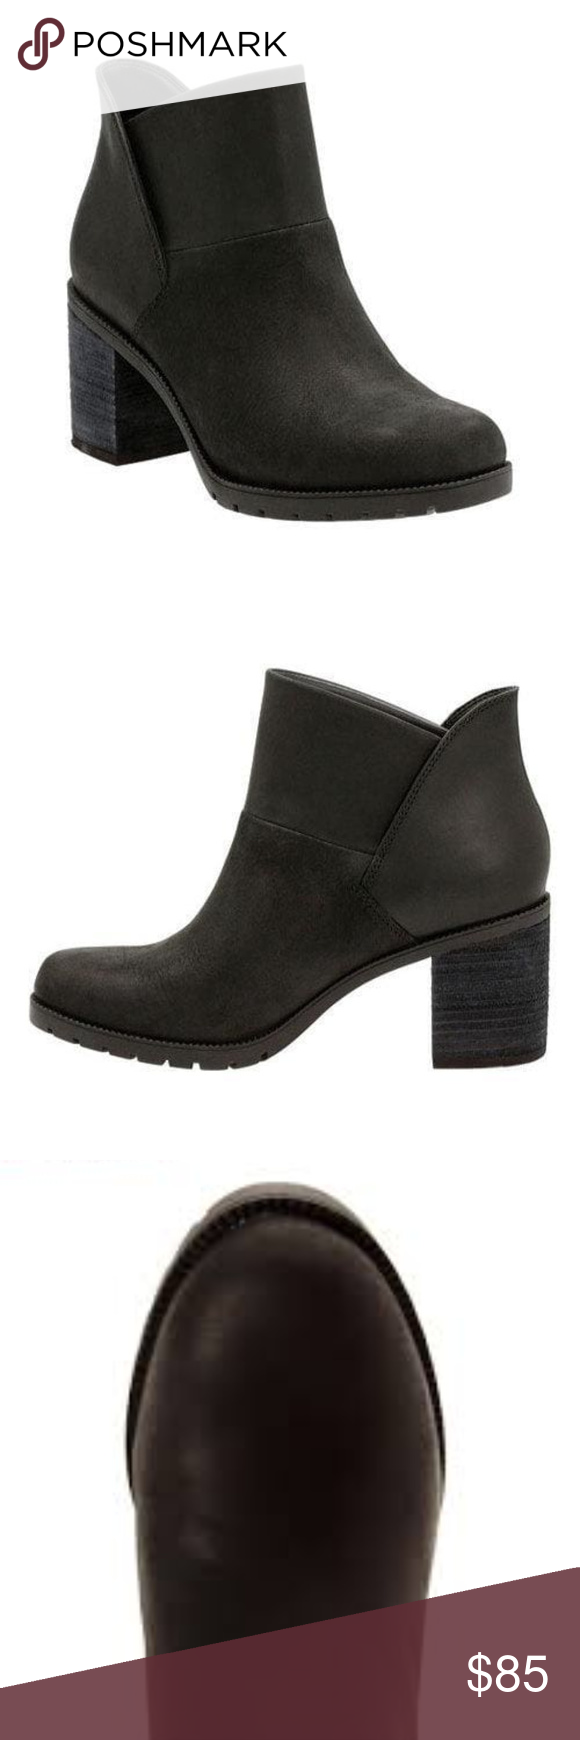 9066e35c0e67 Clarks Ladies Malvet Helen Brand New Ankle Boot Causal slip-on ankle bootie  with wrap